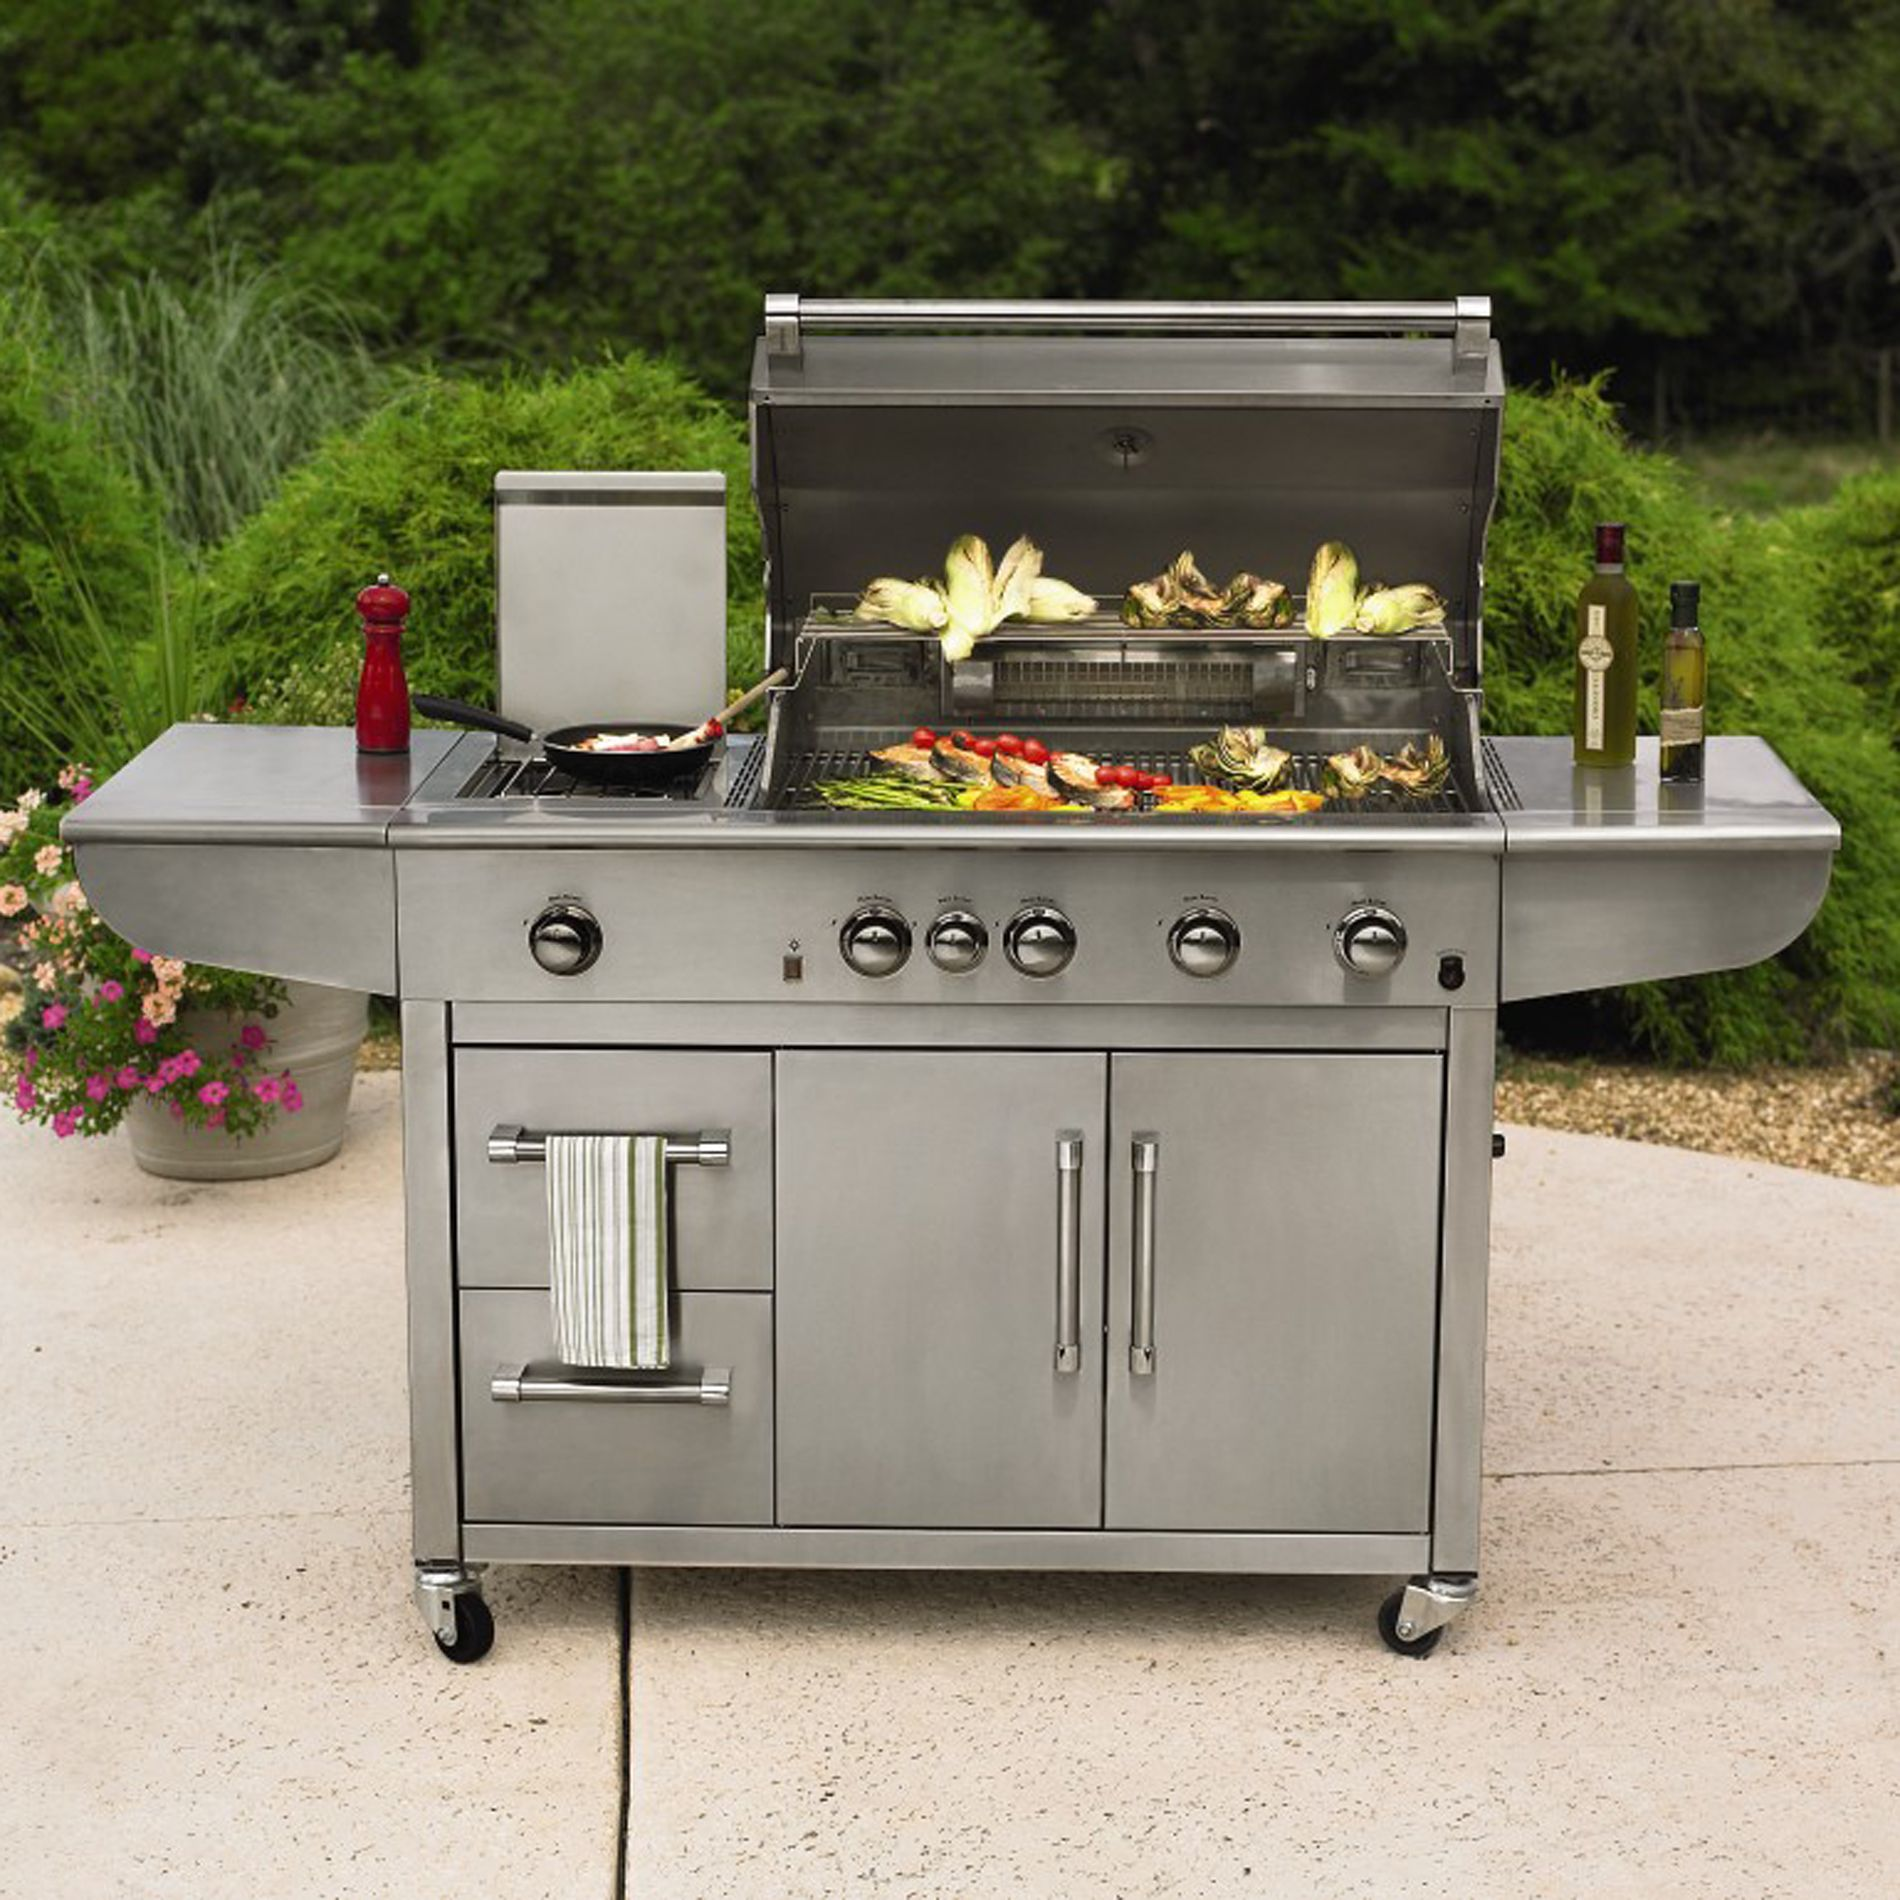 4-Burner-Industrial-Grill